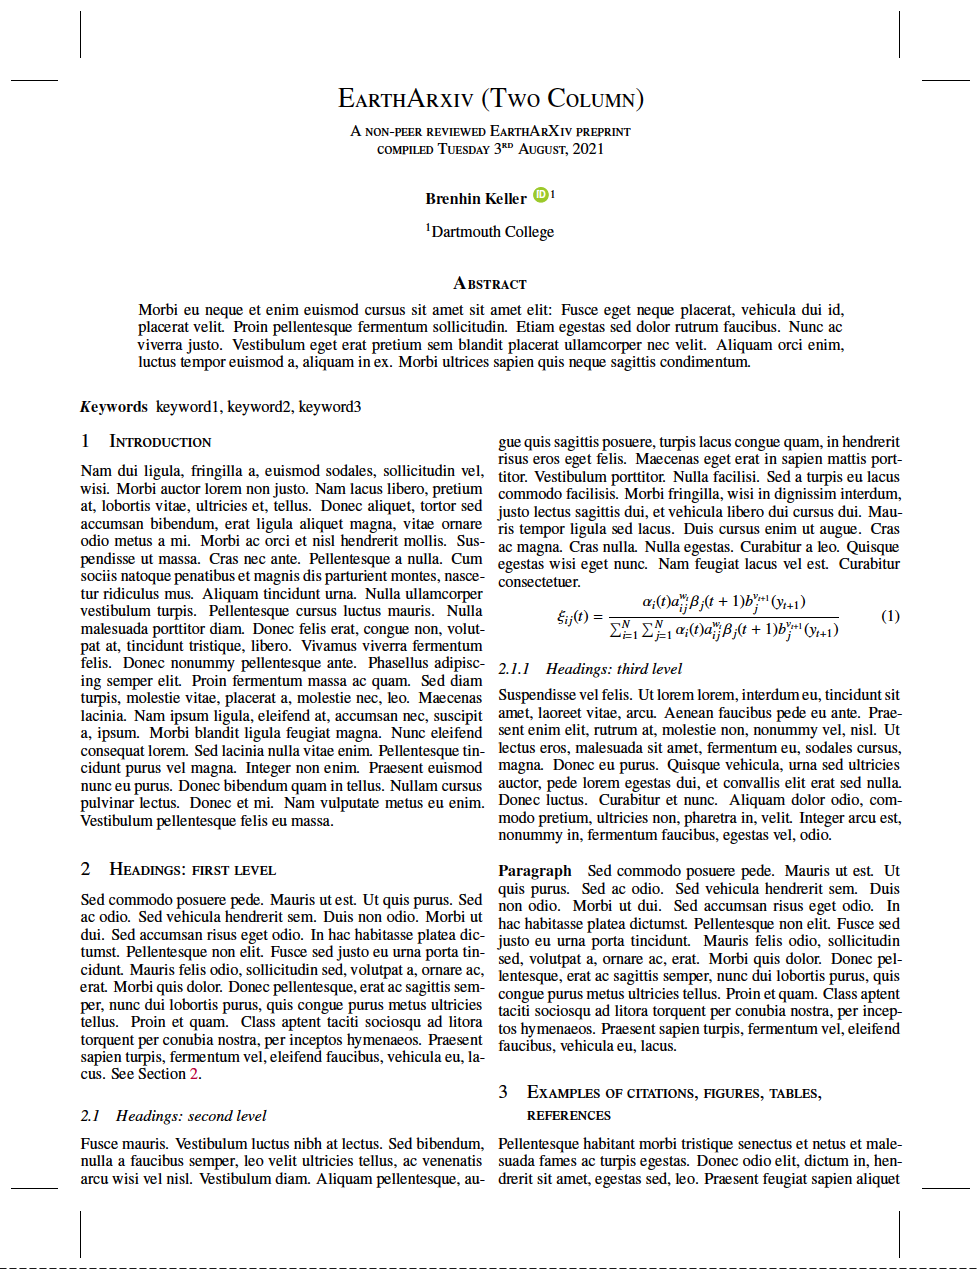 A two column preprint template for EarthArXiv with the AGU bibstyle